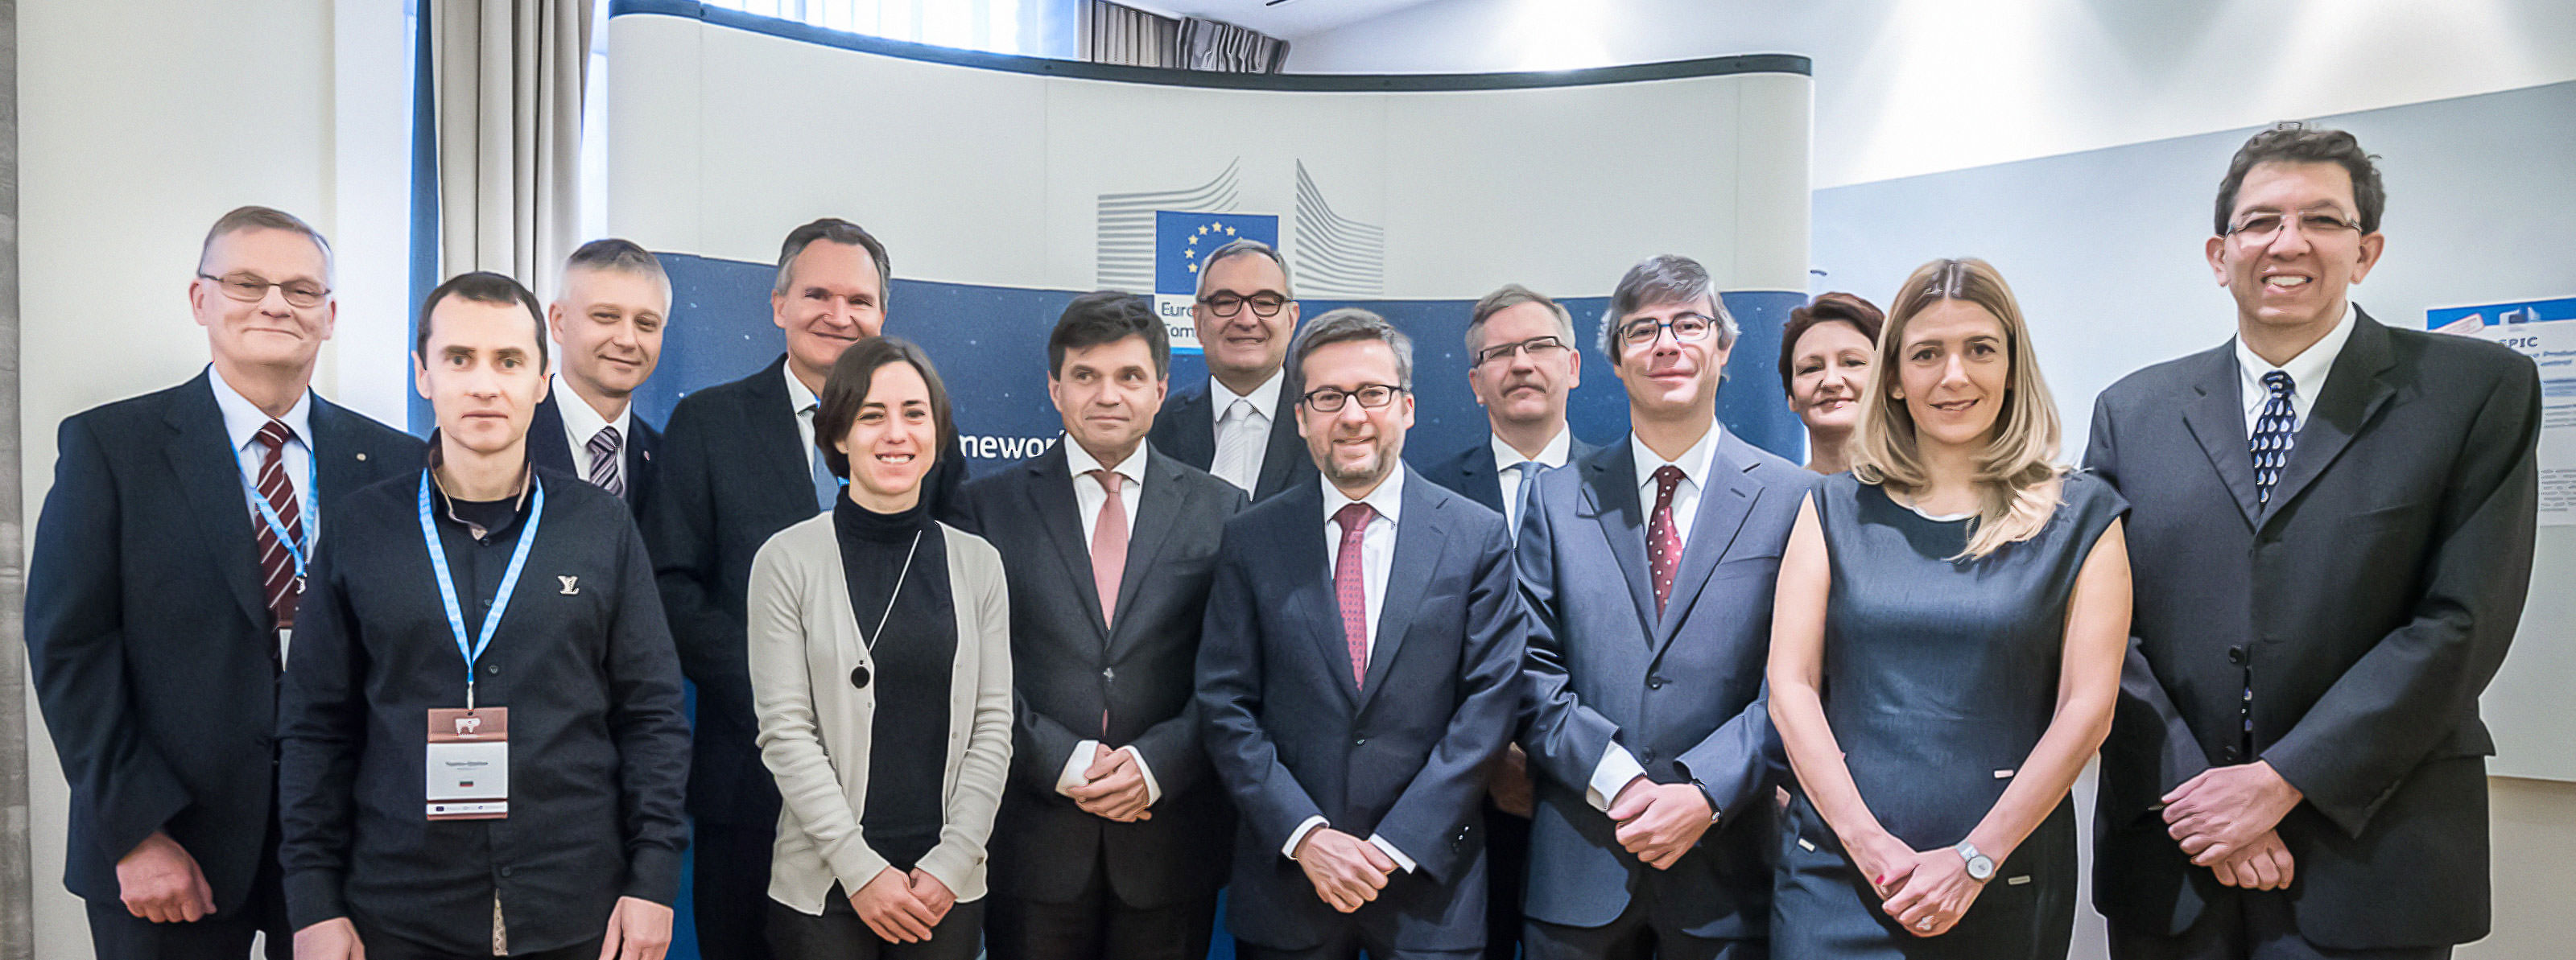 <div class='gray_box' style='opacity: 0.75;text-align:center;font-size:20px;line-height:30px;'> <strong>Meeting of the Teaming coordinators<br>